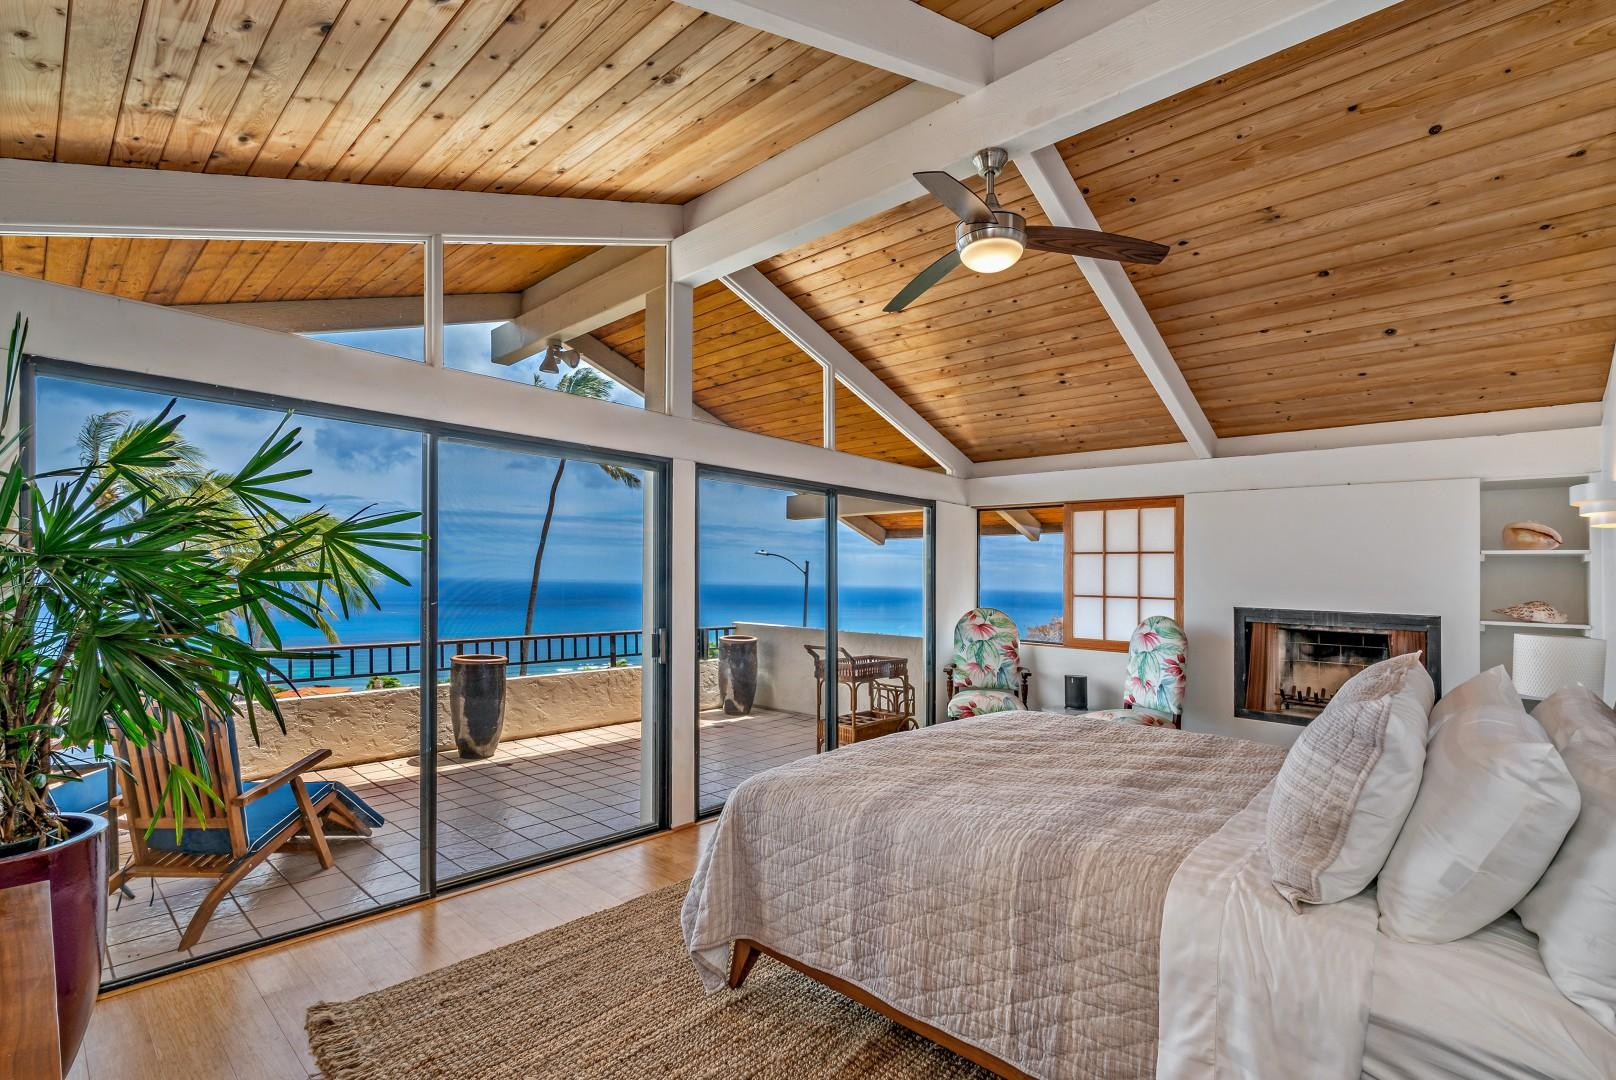 Dream away in the spacious master suite with king size bed, fireplace, spectacular views.